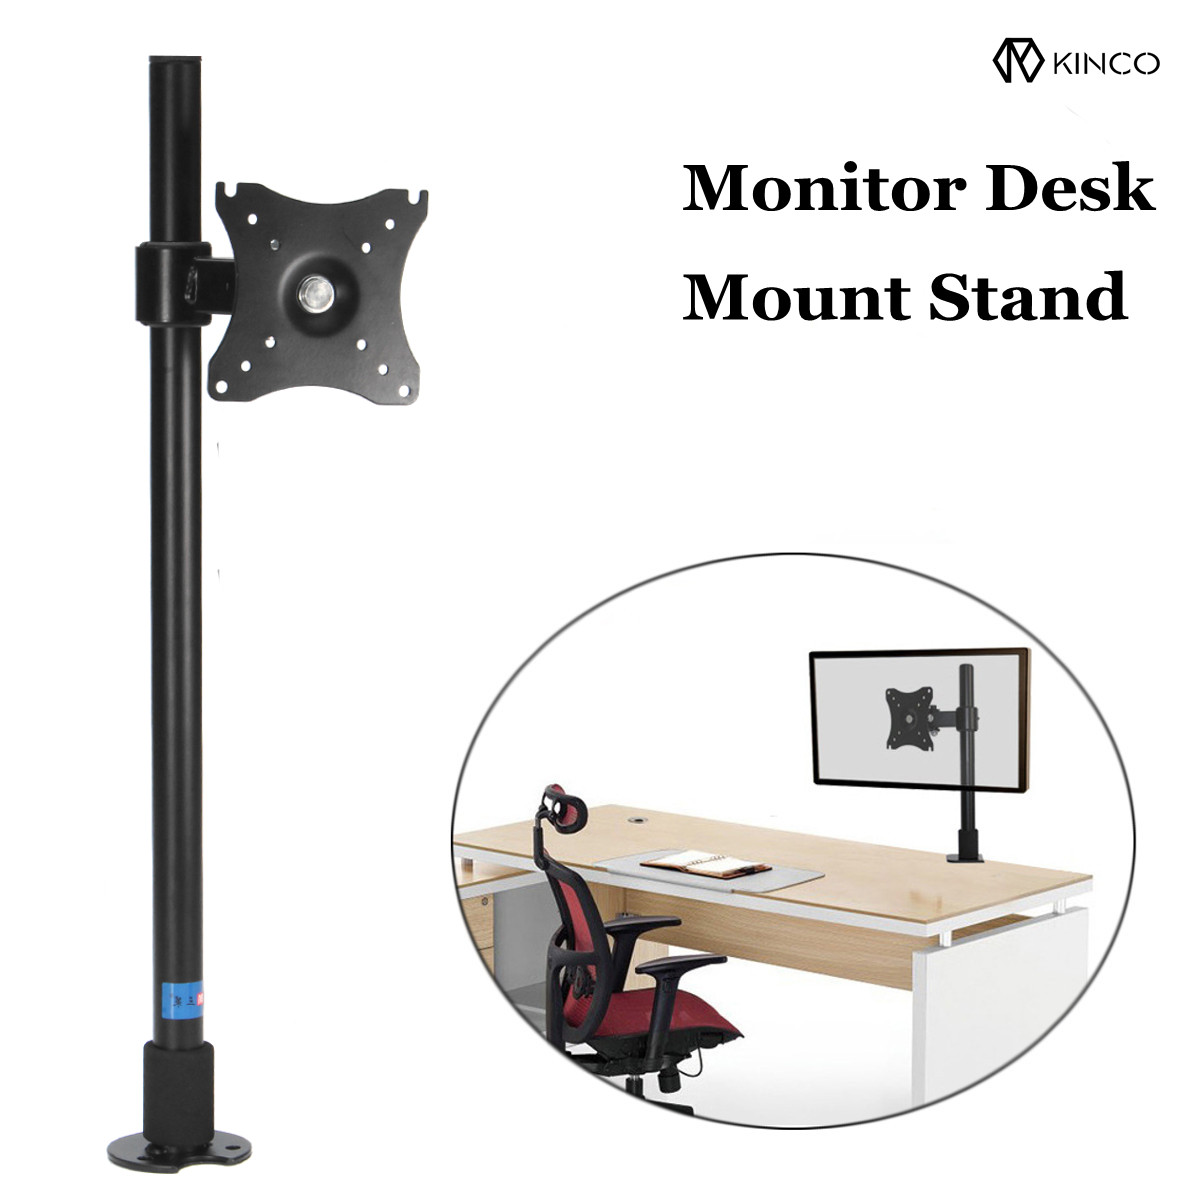 Monitor Stand Rotation Double Arm Adjustable Desktop Holder for Computer Monitor within 14 27 Inch TV Mount Bracket Clamp